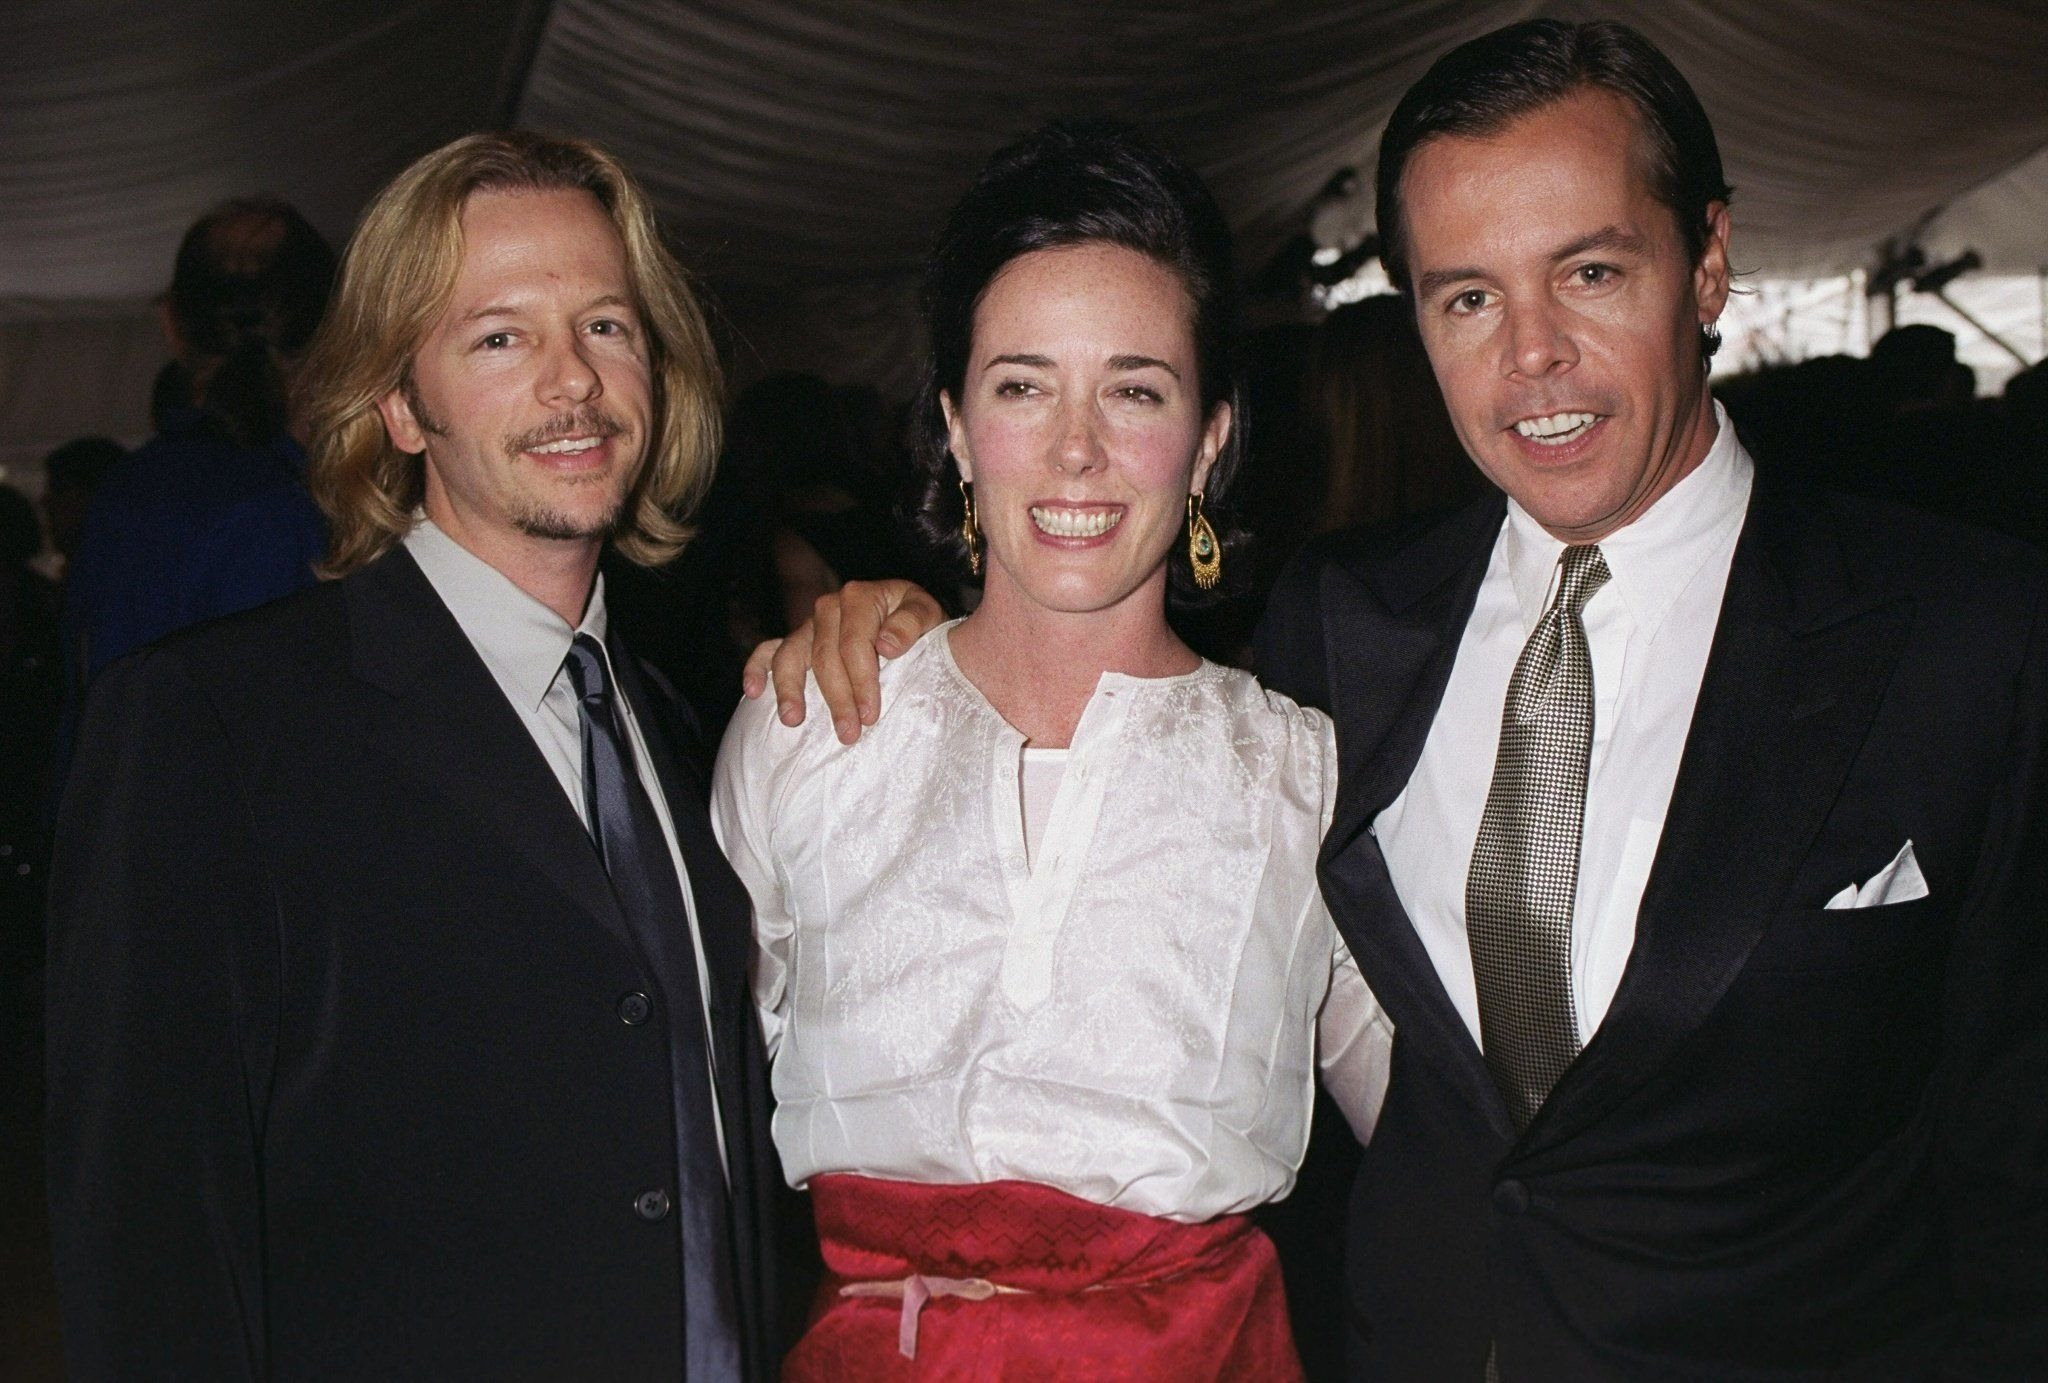 David Spade, Kate Spade and Andy Spade attend the American Fashion Awards in